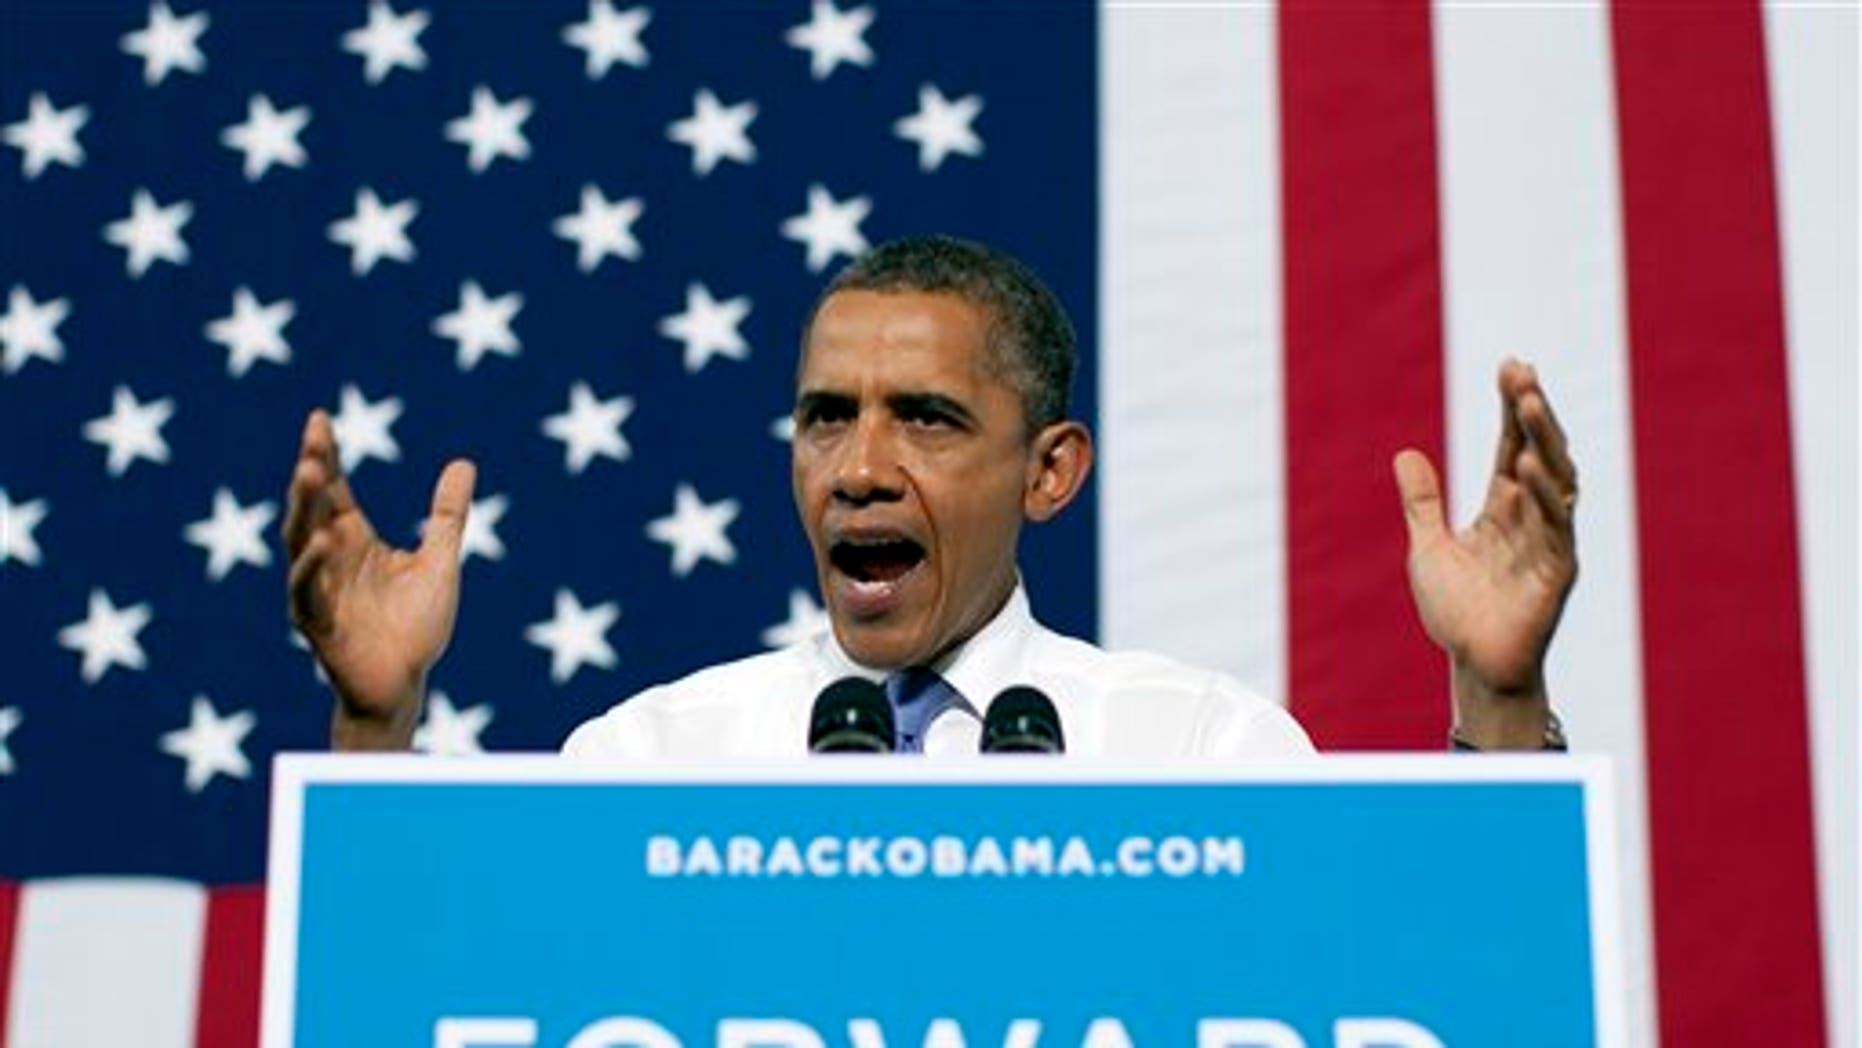 Aug. 21: President Obama speaks during a campaign event at Truckee Meadows Community College in Reno, Nev.